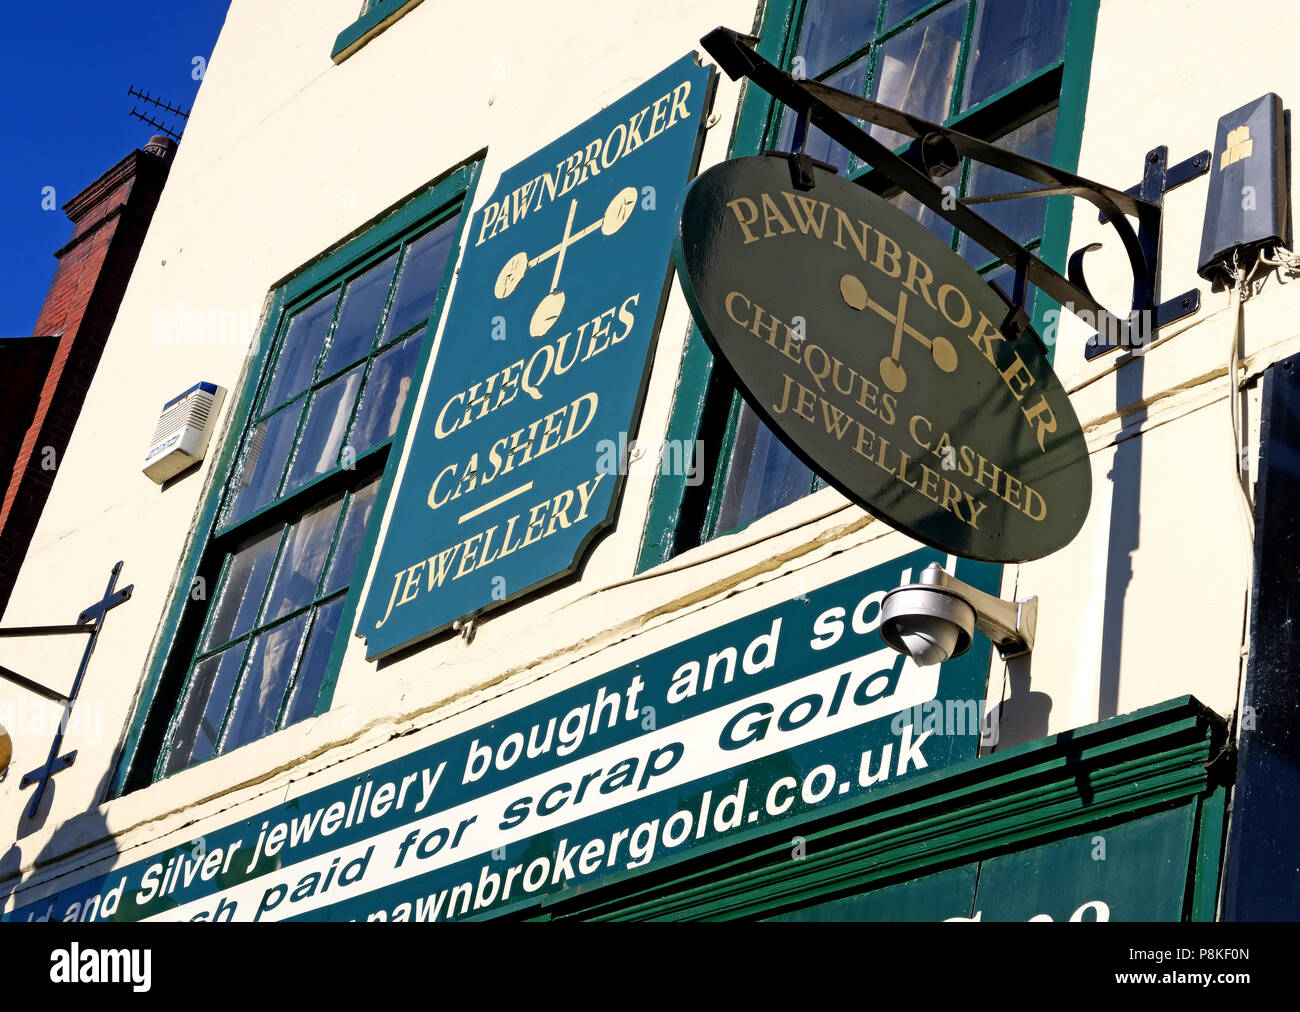 Antique & Bargain Stores Ltd, Pawnbrokers, pawn shop,  28 Market Place, Doncaster, South Yorkshire, England,UK,  DN1 1NE Stock Photo